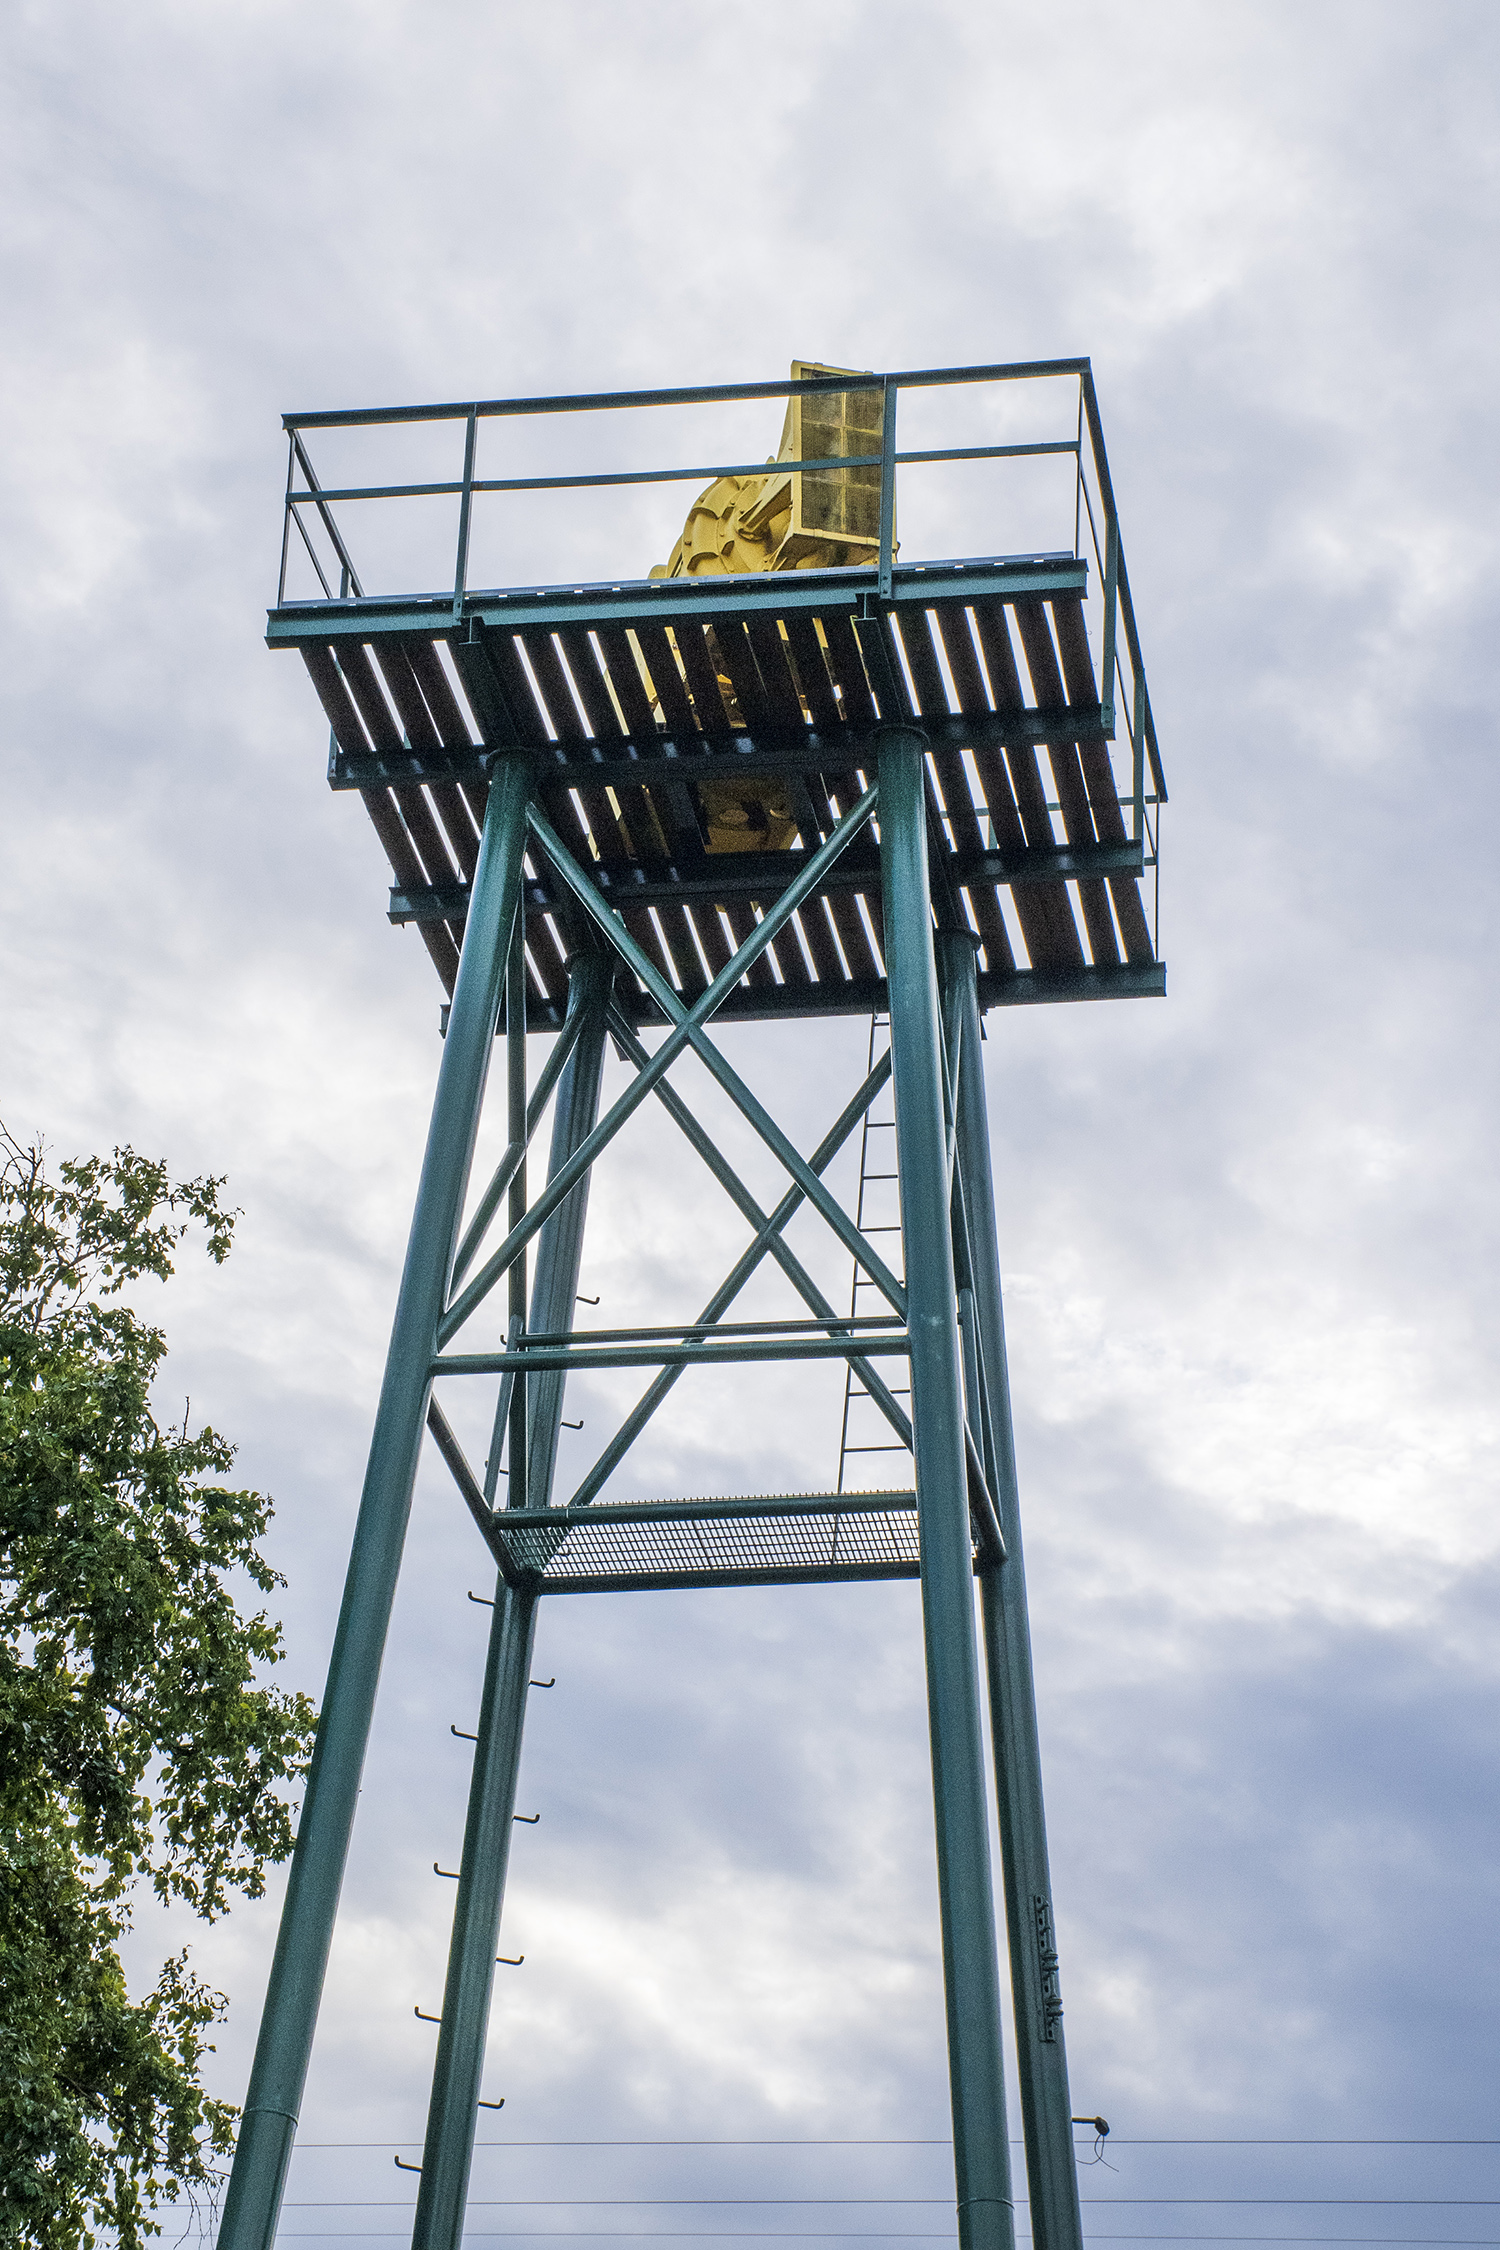 One of the country's few remaining air raid towers can be found in Seattle's Phinney Ridge neighborhood. Built in 1954 to alert residents of potential nuclear air threats, the Phinney Park Air Raid Tower featured the loudest siren ever built. The hazard yellow, Cold War relic stands tall above a small pocket park and across the street from Red Mill Burgers. But don't worry, the siren no longer works. (Image: Rachael Jones / Seattle Refined)